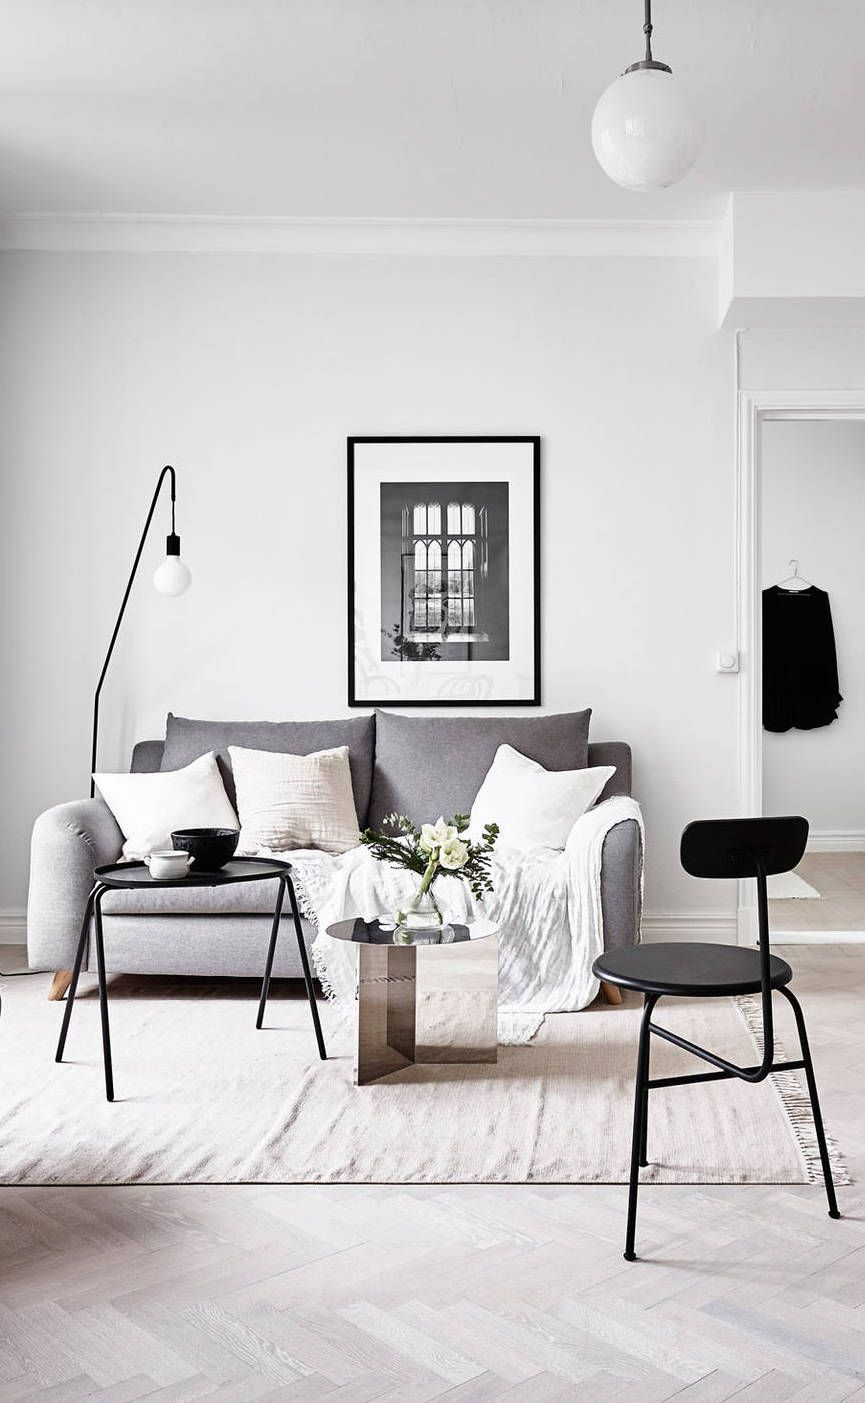 Browse Interior Design Ideas For An Amazing Living Room With A Wide Range Minimalist Living Room Decor Modern Minimalist Living Room Living Room Scandinavian